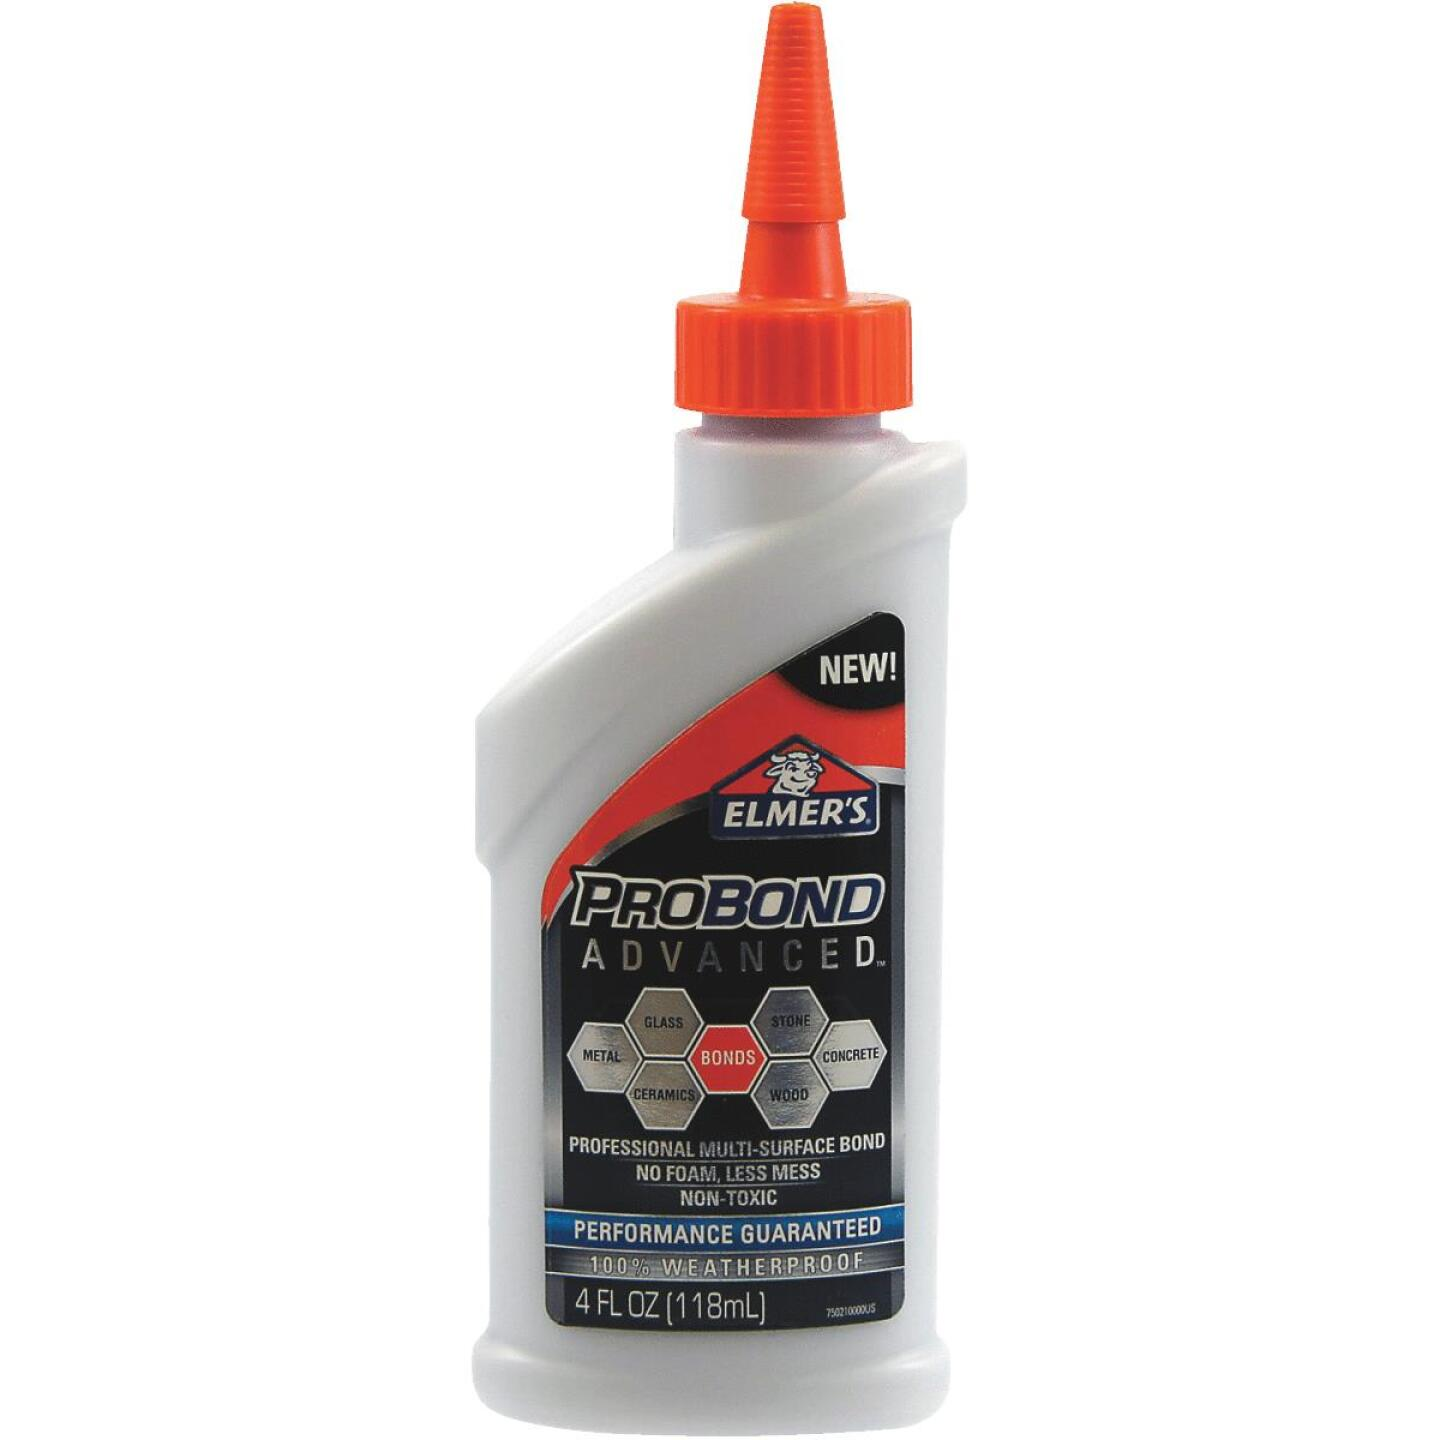 Elmer's ProBond Advanced 4 Oz. All-Purpose Glue Image 1